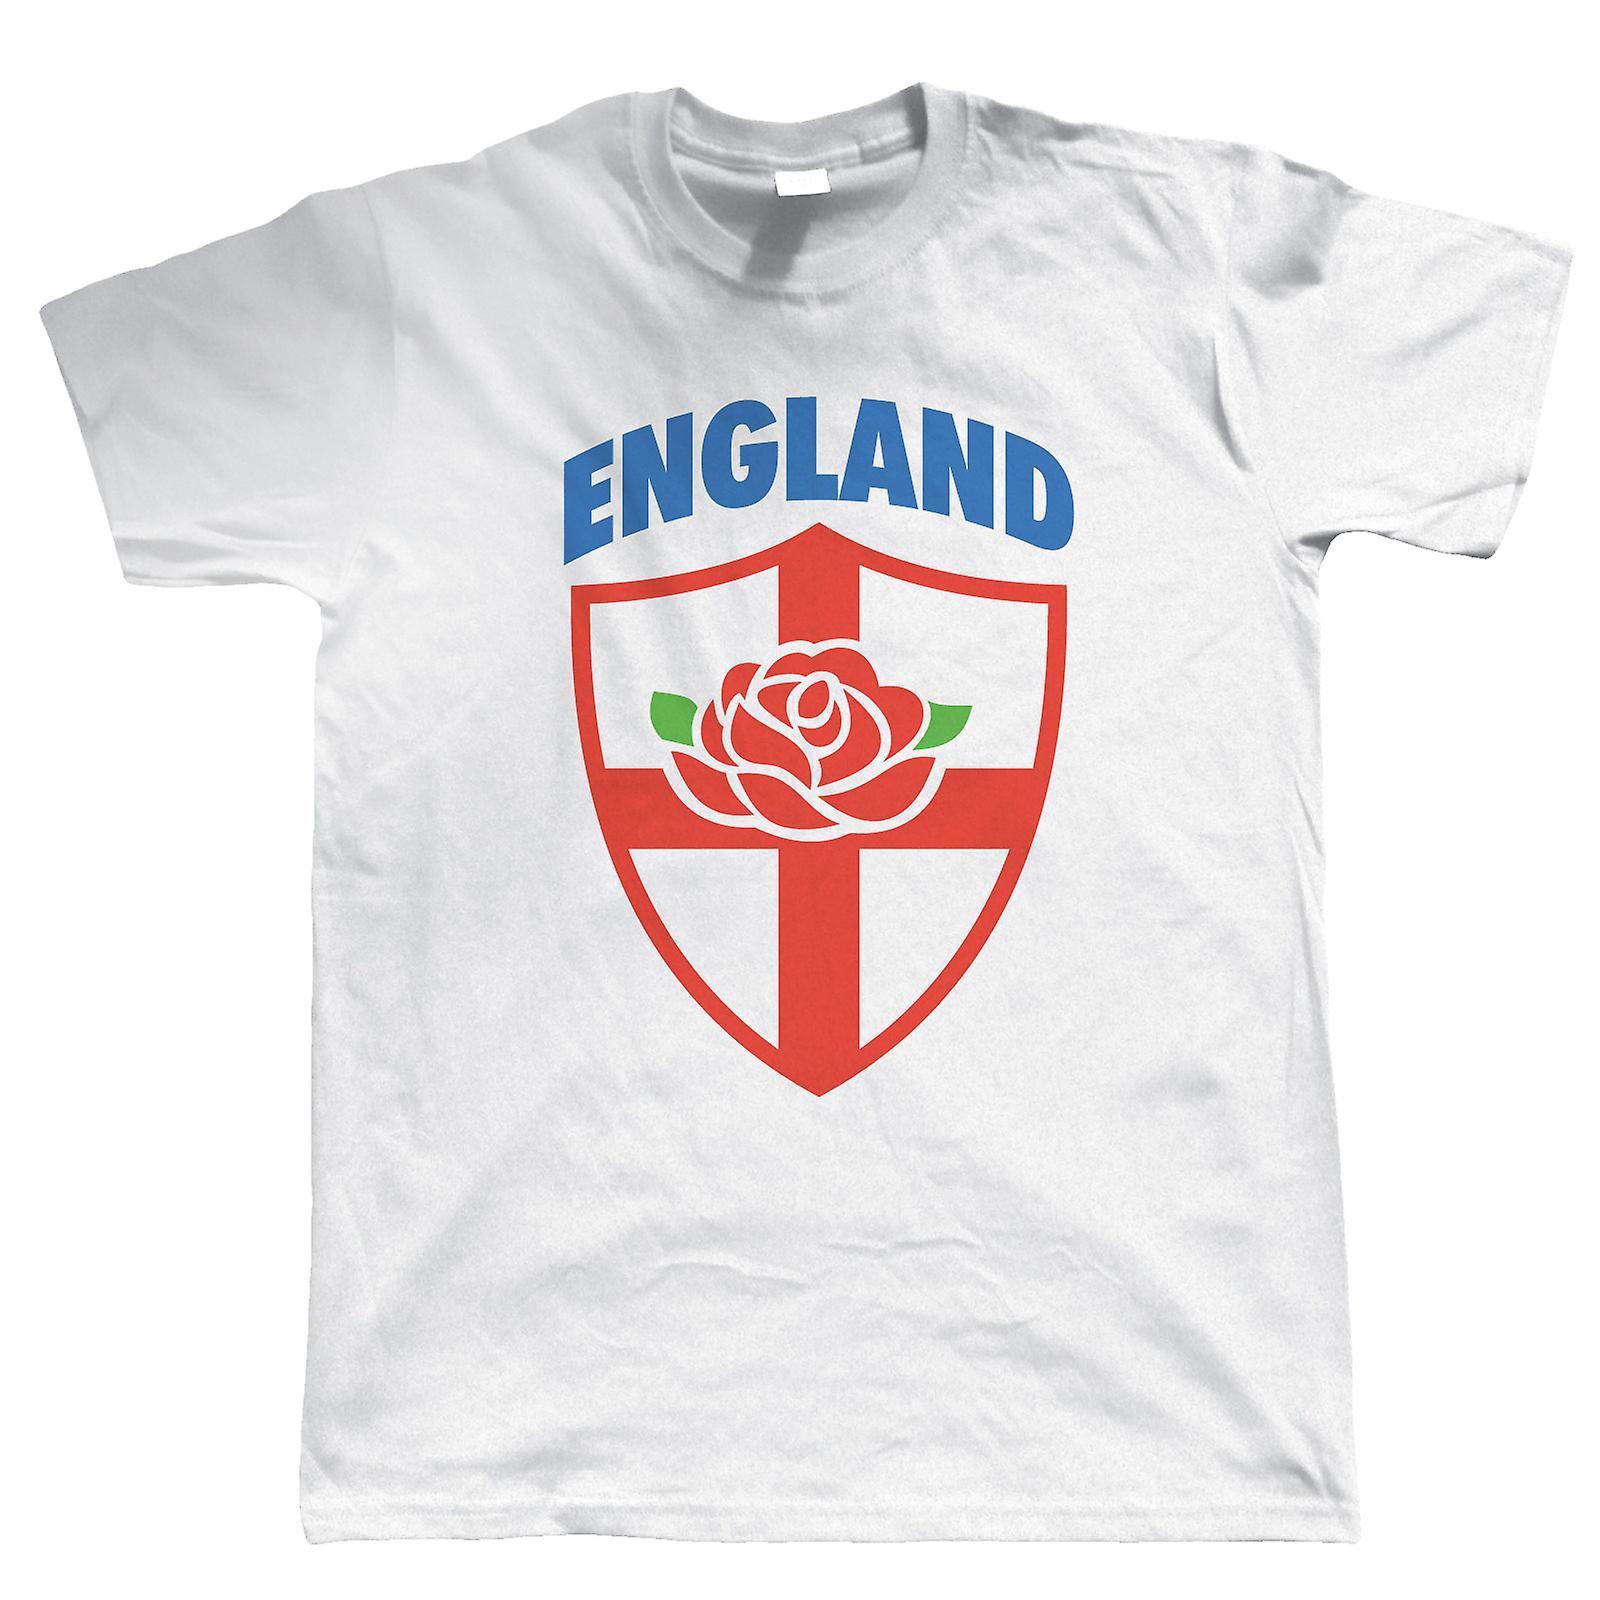 england rugby herren t shirt fruugo. Black Bedroom Furniture Sets. Home Design Ideas